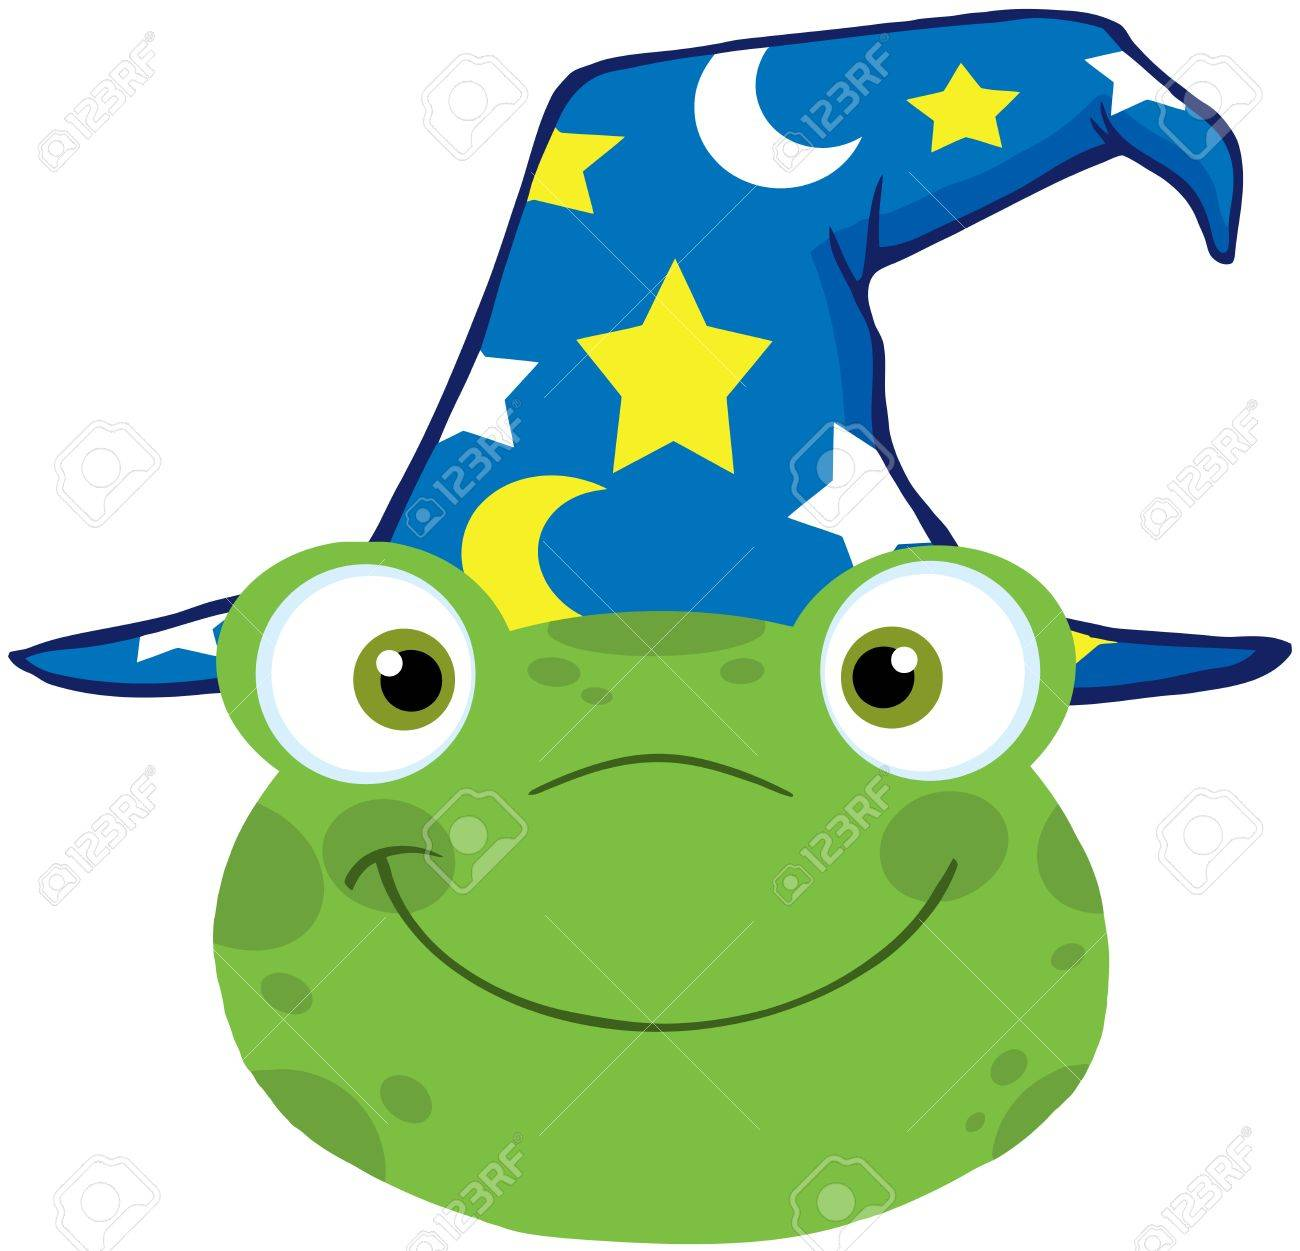 Cute Frog Smiling Head With Wizard Hat Stock Vector - 19986689